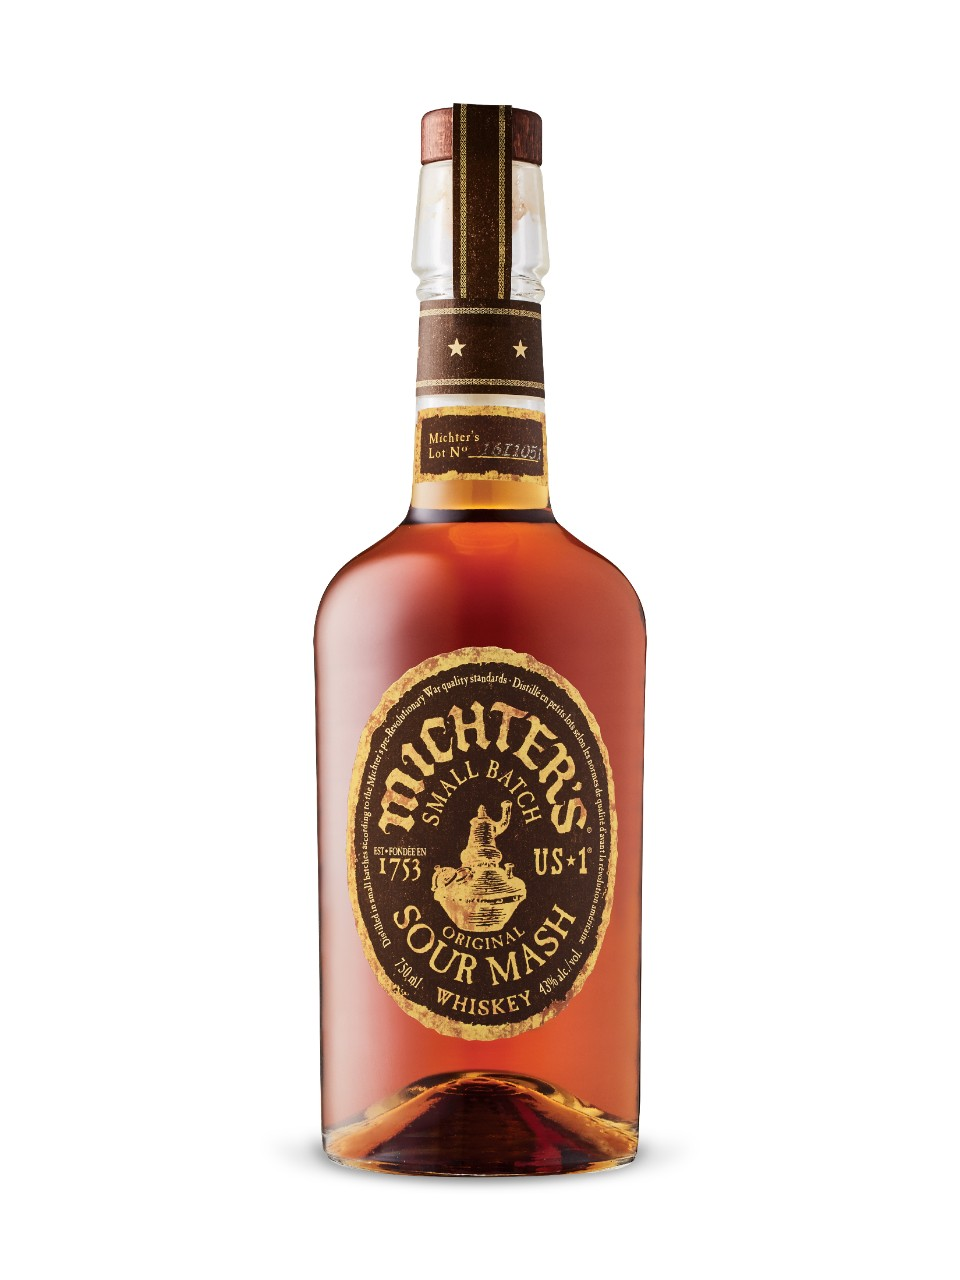 Michter's US-1 Original Small Batch Sour Mash Whiskey